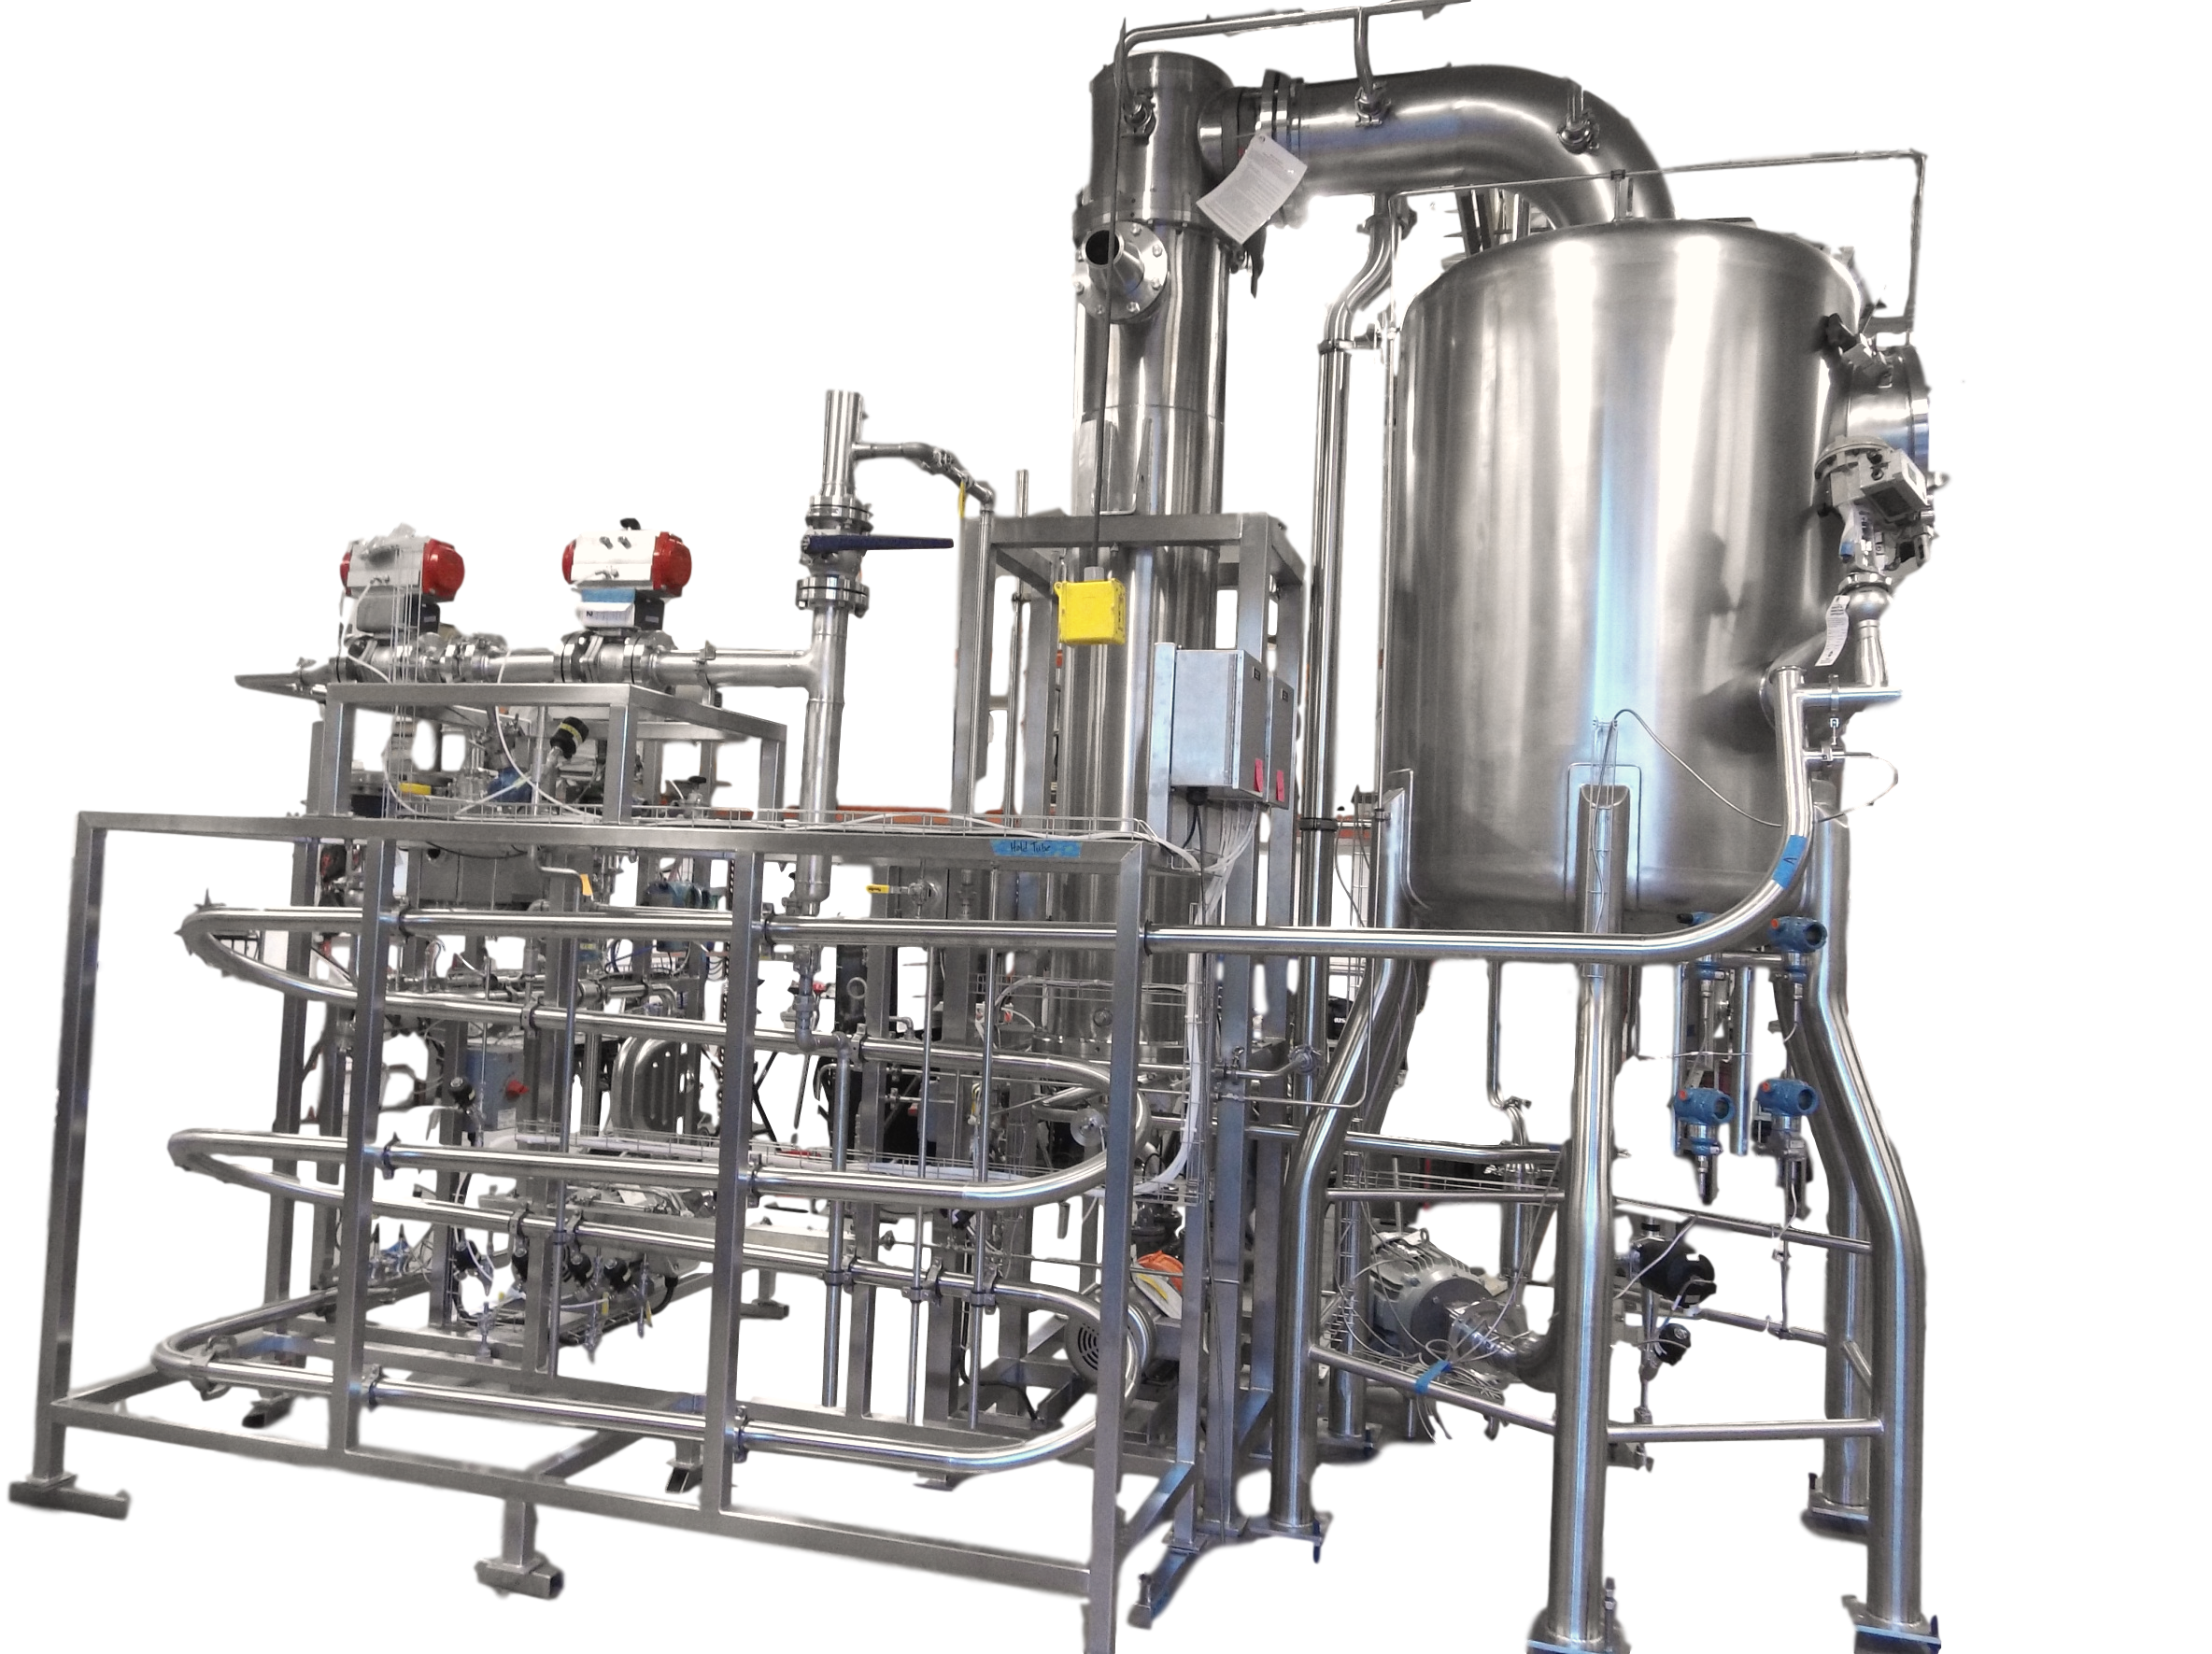 direct steam injection UHT / HHST for clean Low Acid processing for Shelf Stable or Extended Shelf Life (ESL) products.